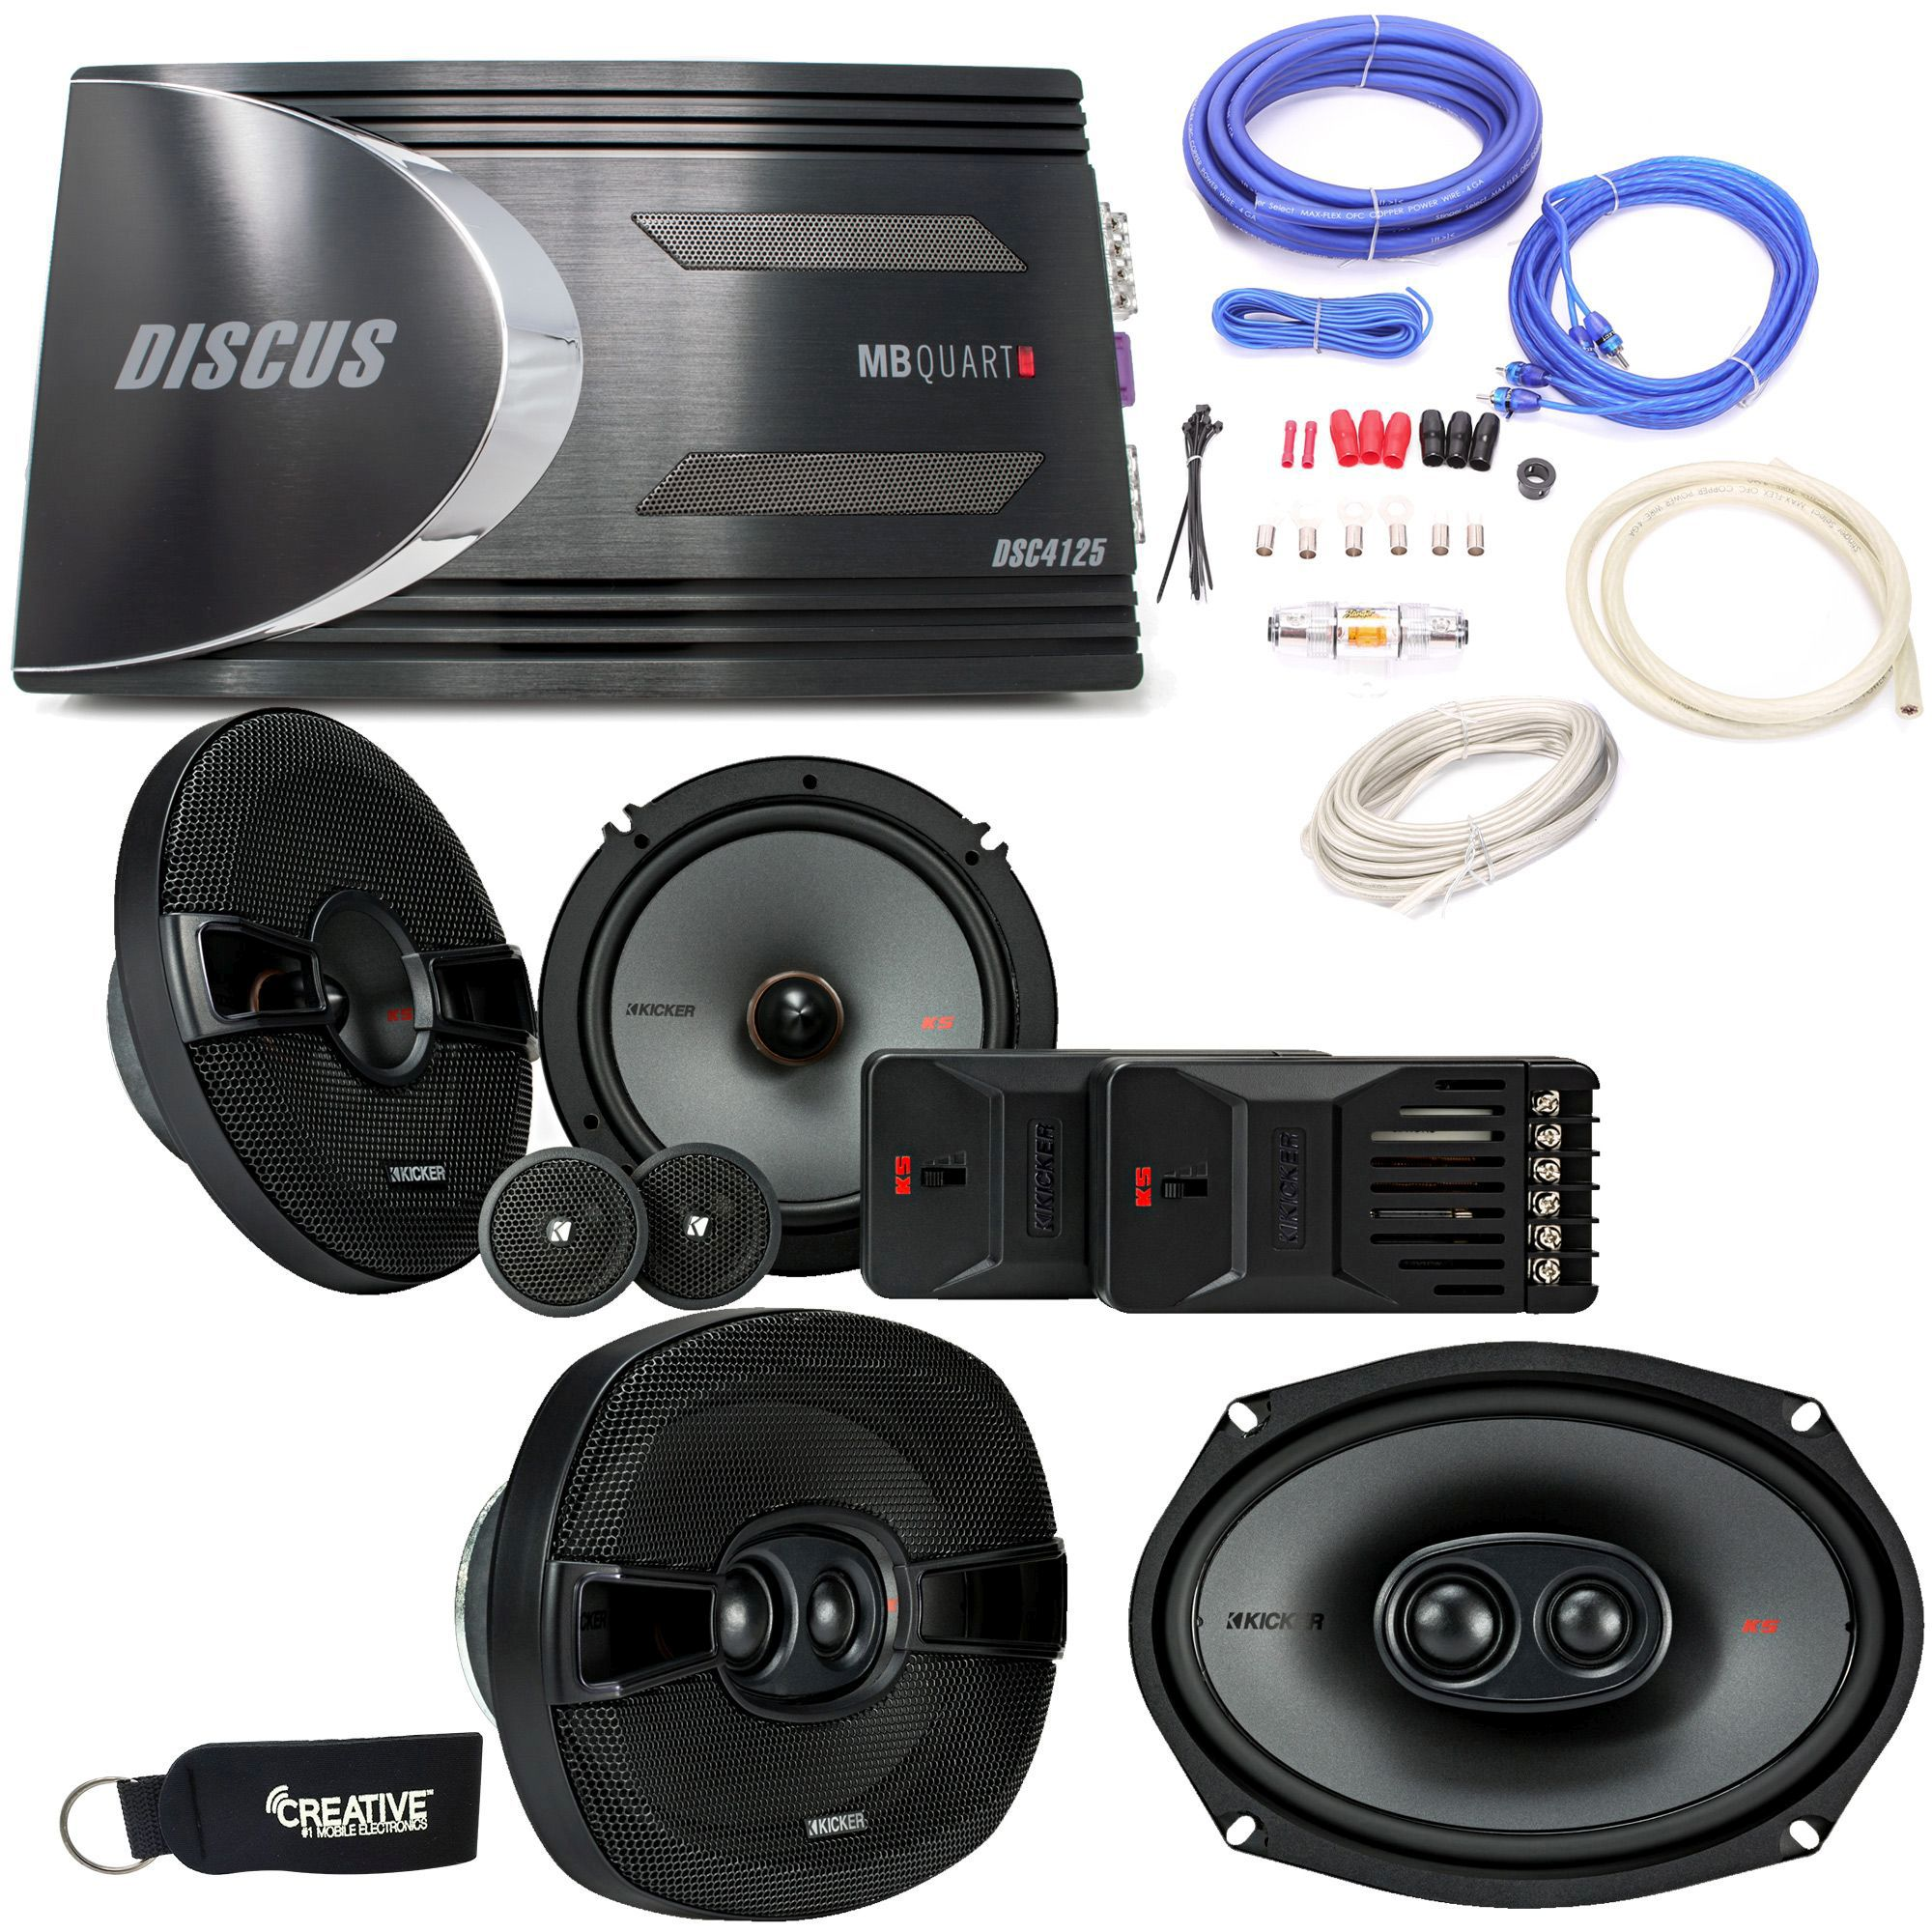 "Kicker - 44KSS6504 6.5"" Component Speakers, 44KSC6904 6x9"" Speakers, a MB Quart DSC-4125 4-Channel Amp & Wire Kit"